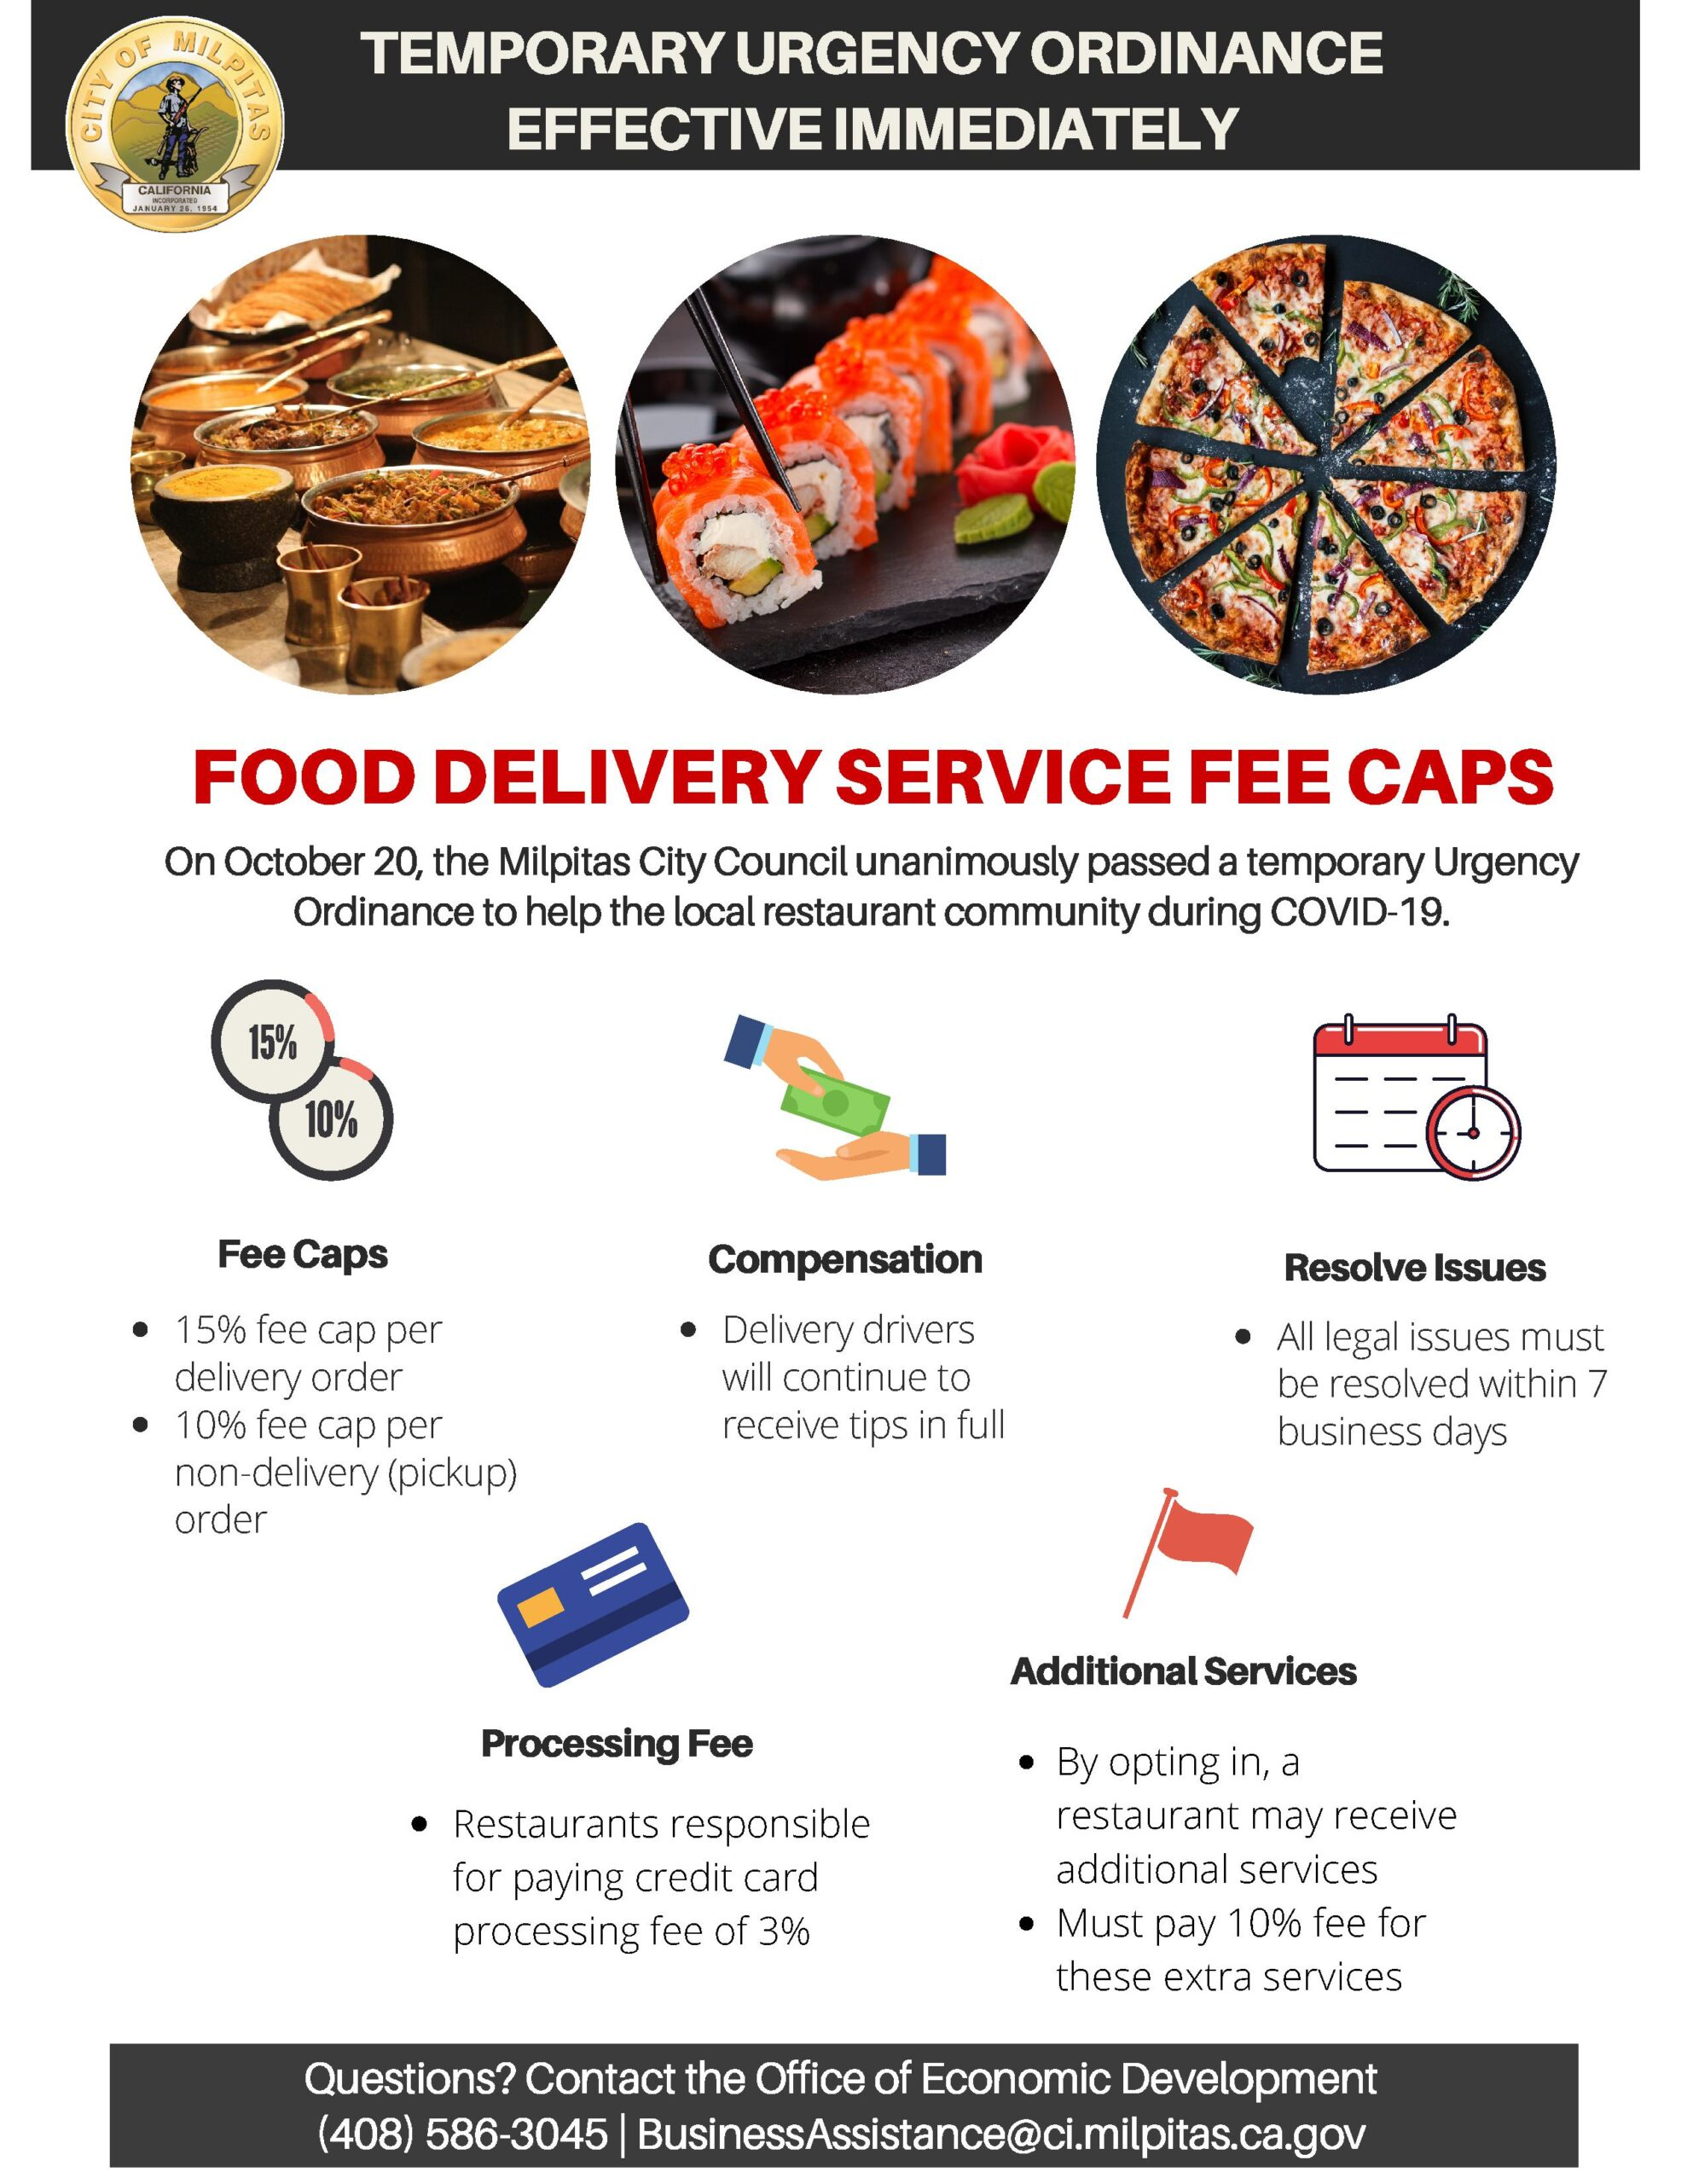 Food Delivery Service Fee Caps